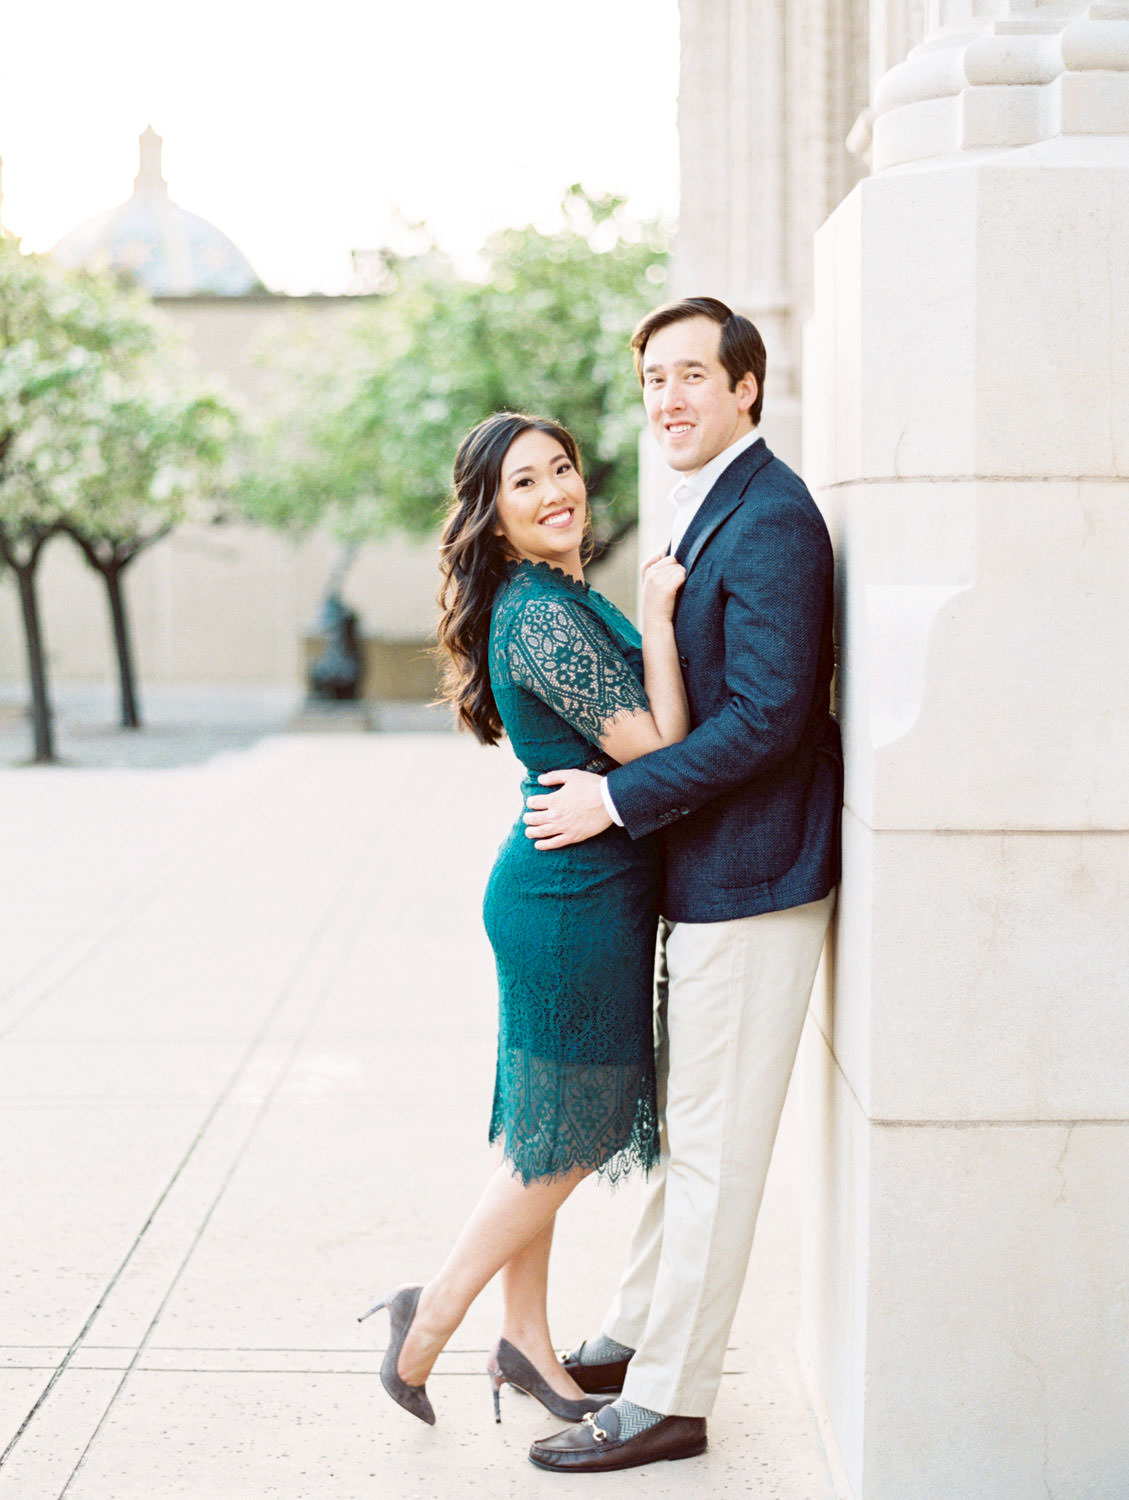 Bride wearing dark teal lace cut dress with curled hair and soft makeup snuggled up with Groom in navy wool suit jacket and khakis, Balboa Park San Diego Museum of Art engagement film photos by Cavin Elizabeth Photography